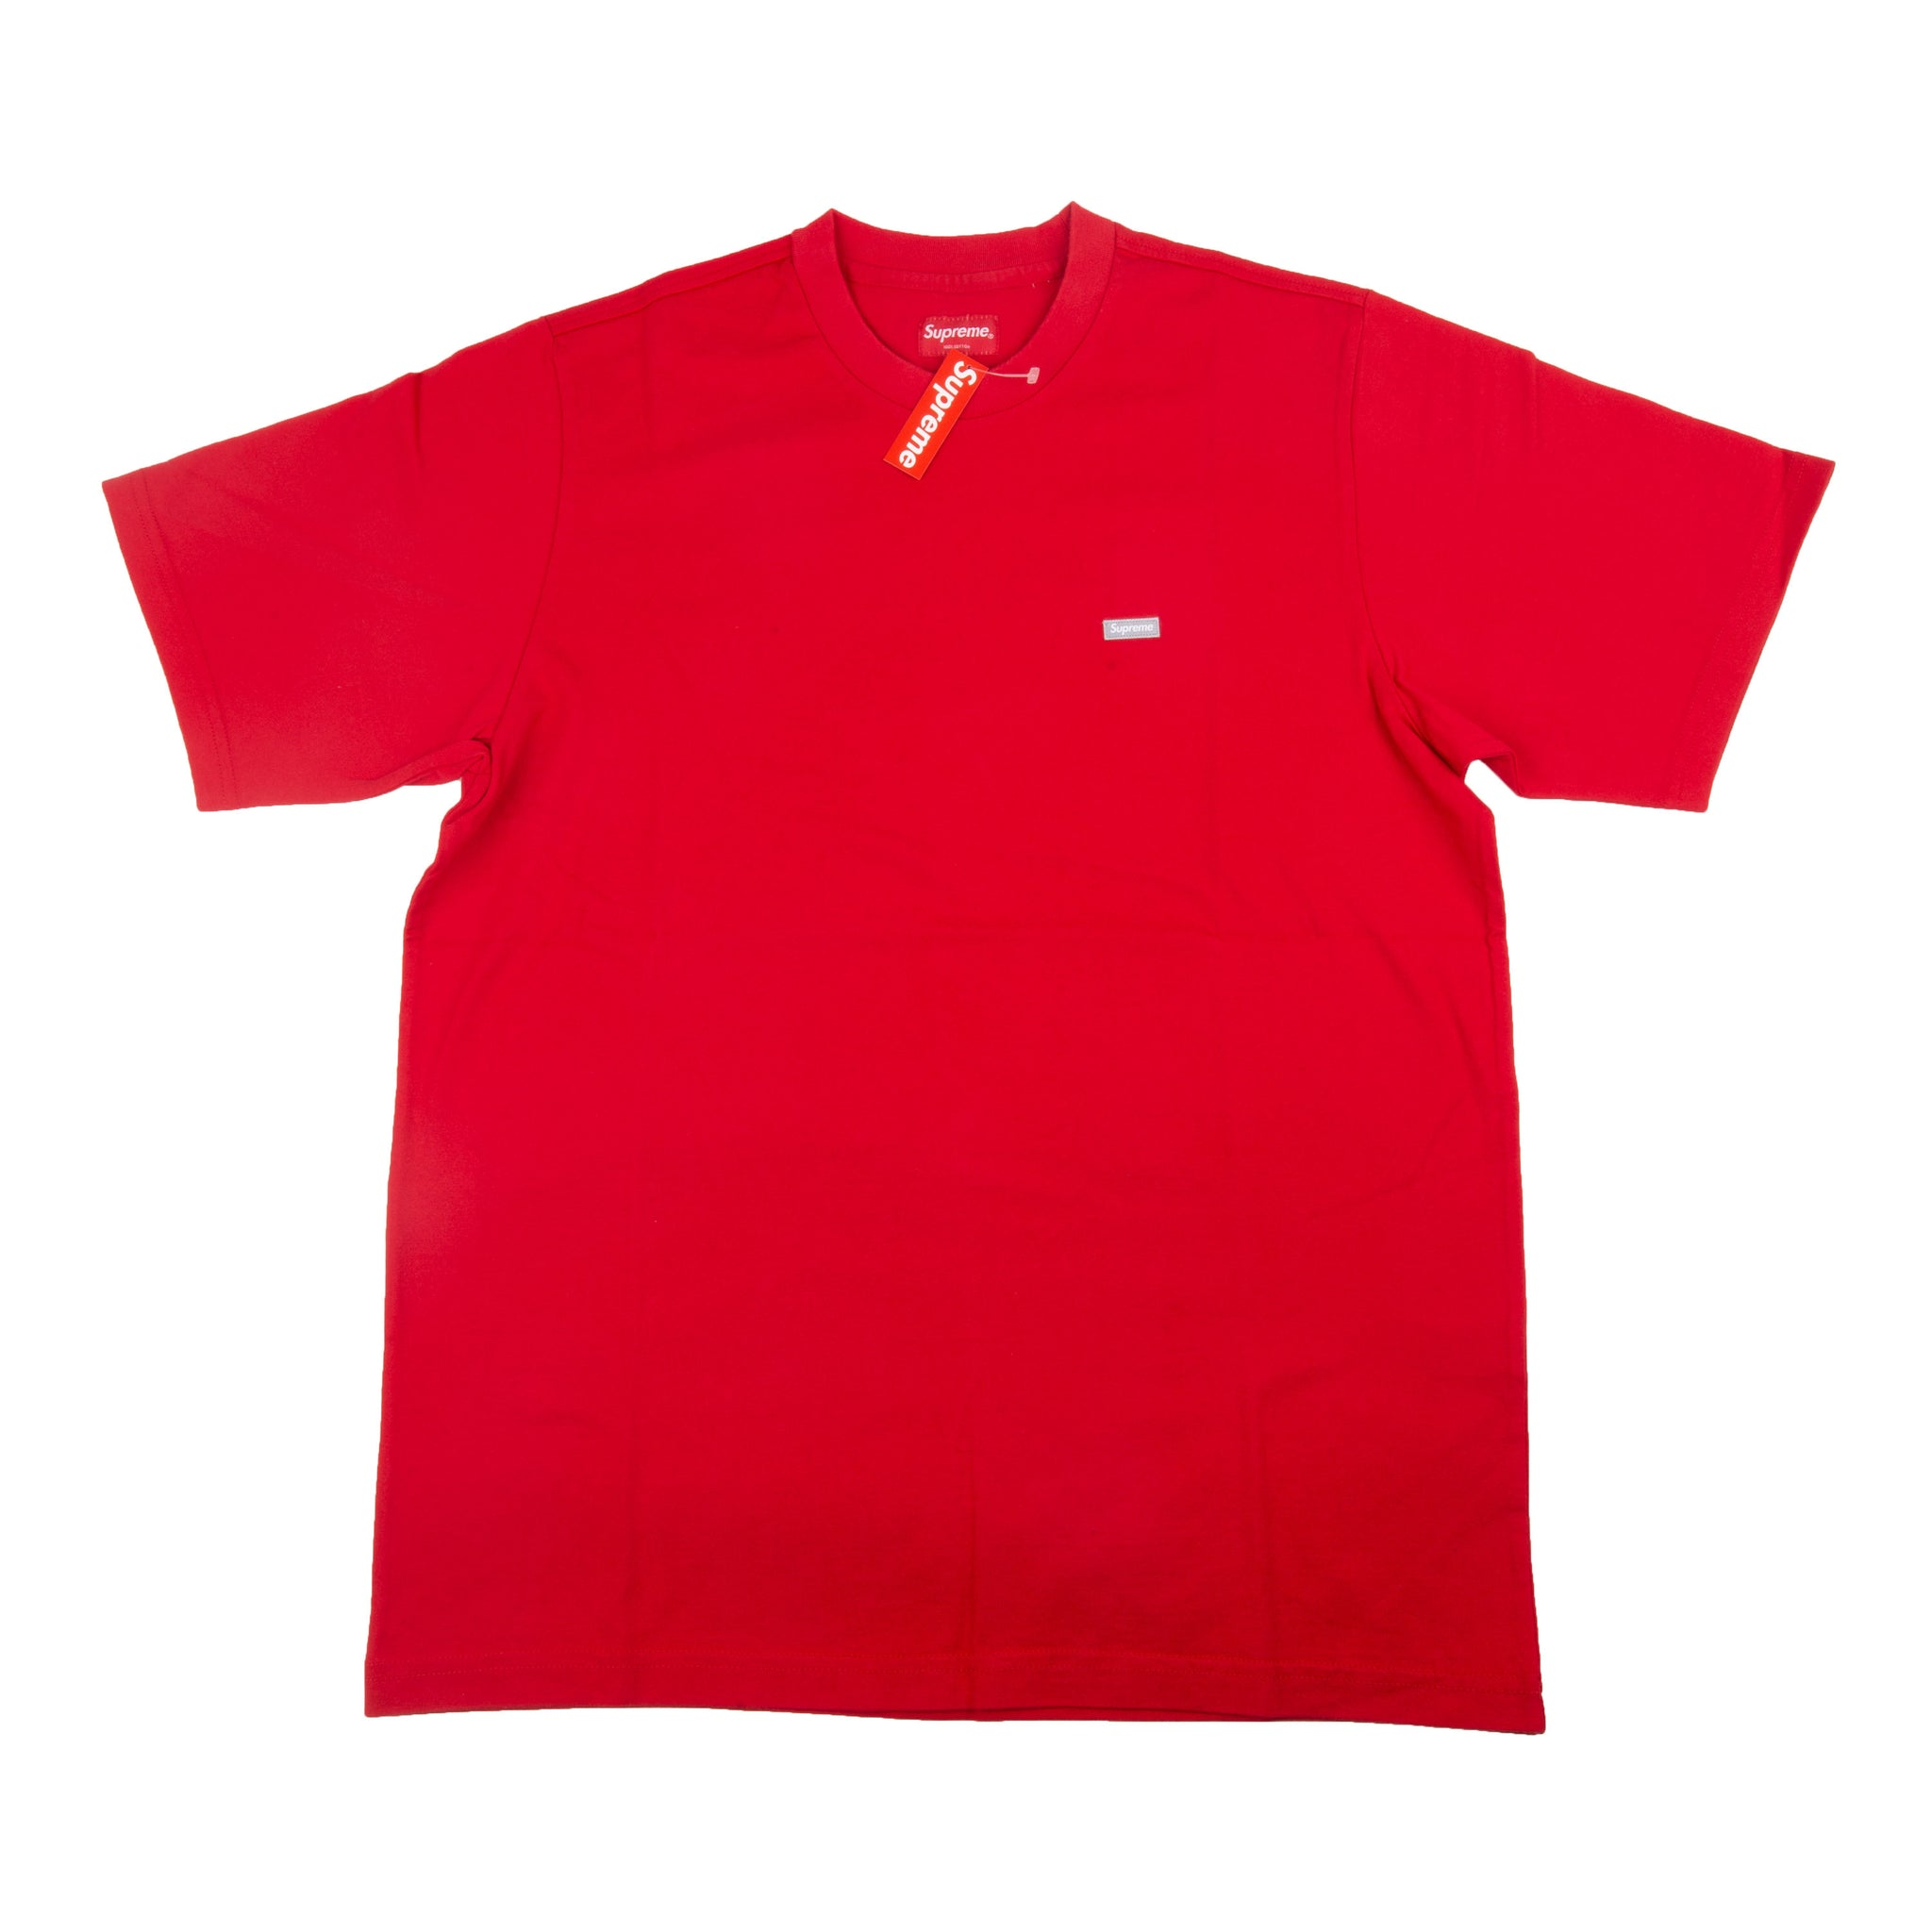 ed42b8ad45a3 Supreme Red Reflective Small Box Logo Tee – On The Arm